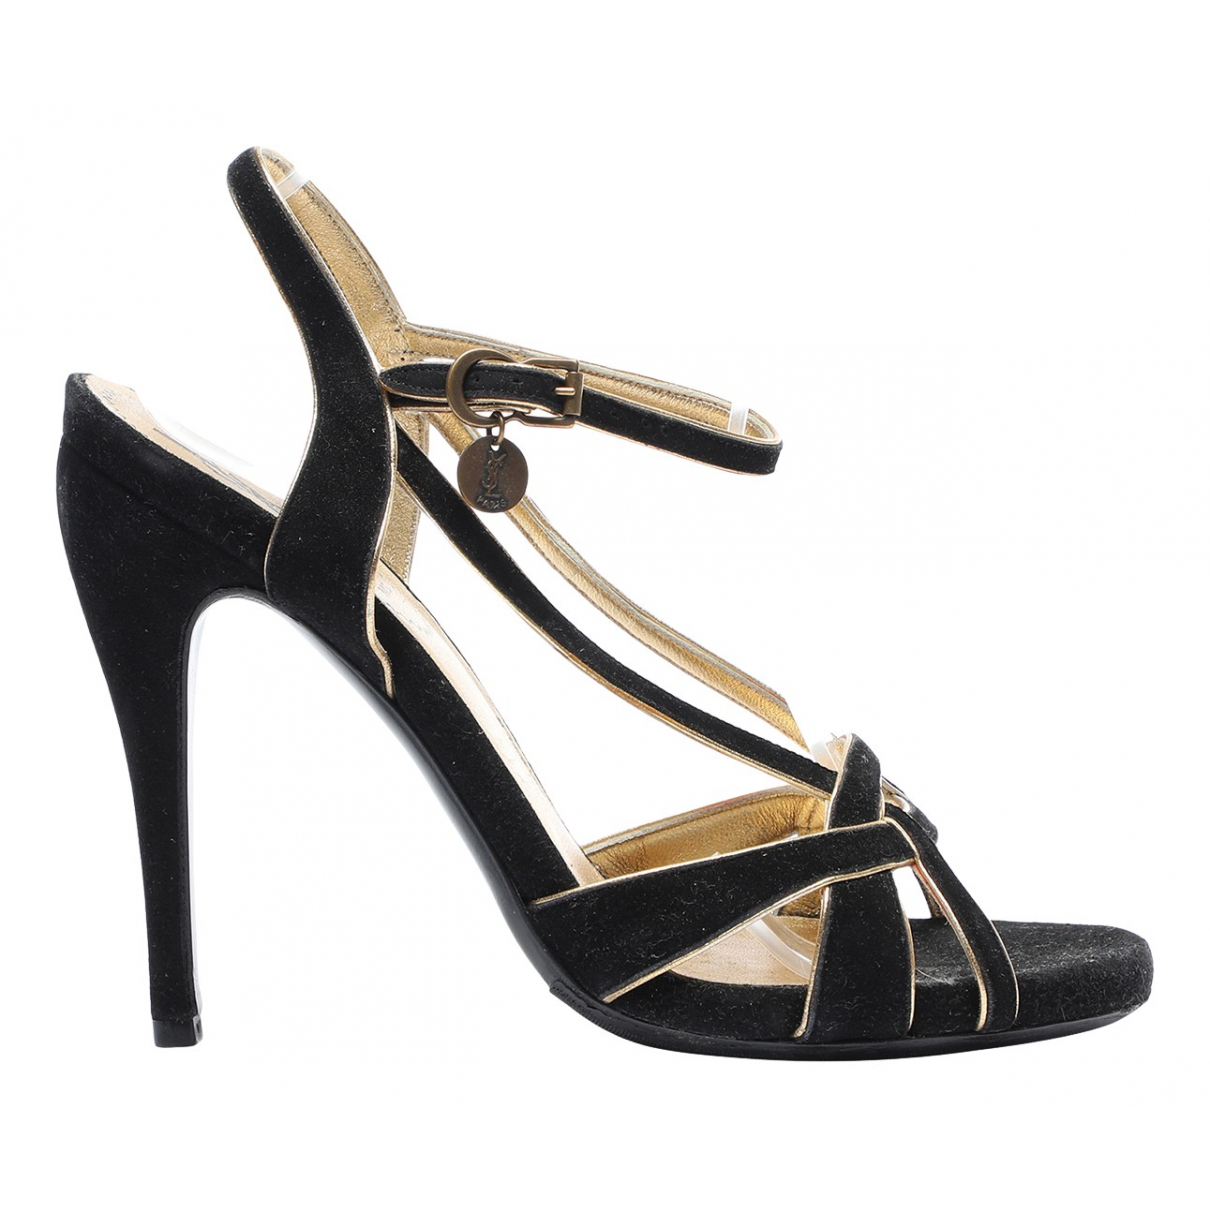 Yves Saint Laurent \N Black Suede Sandals for Women 37 EU